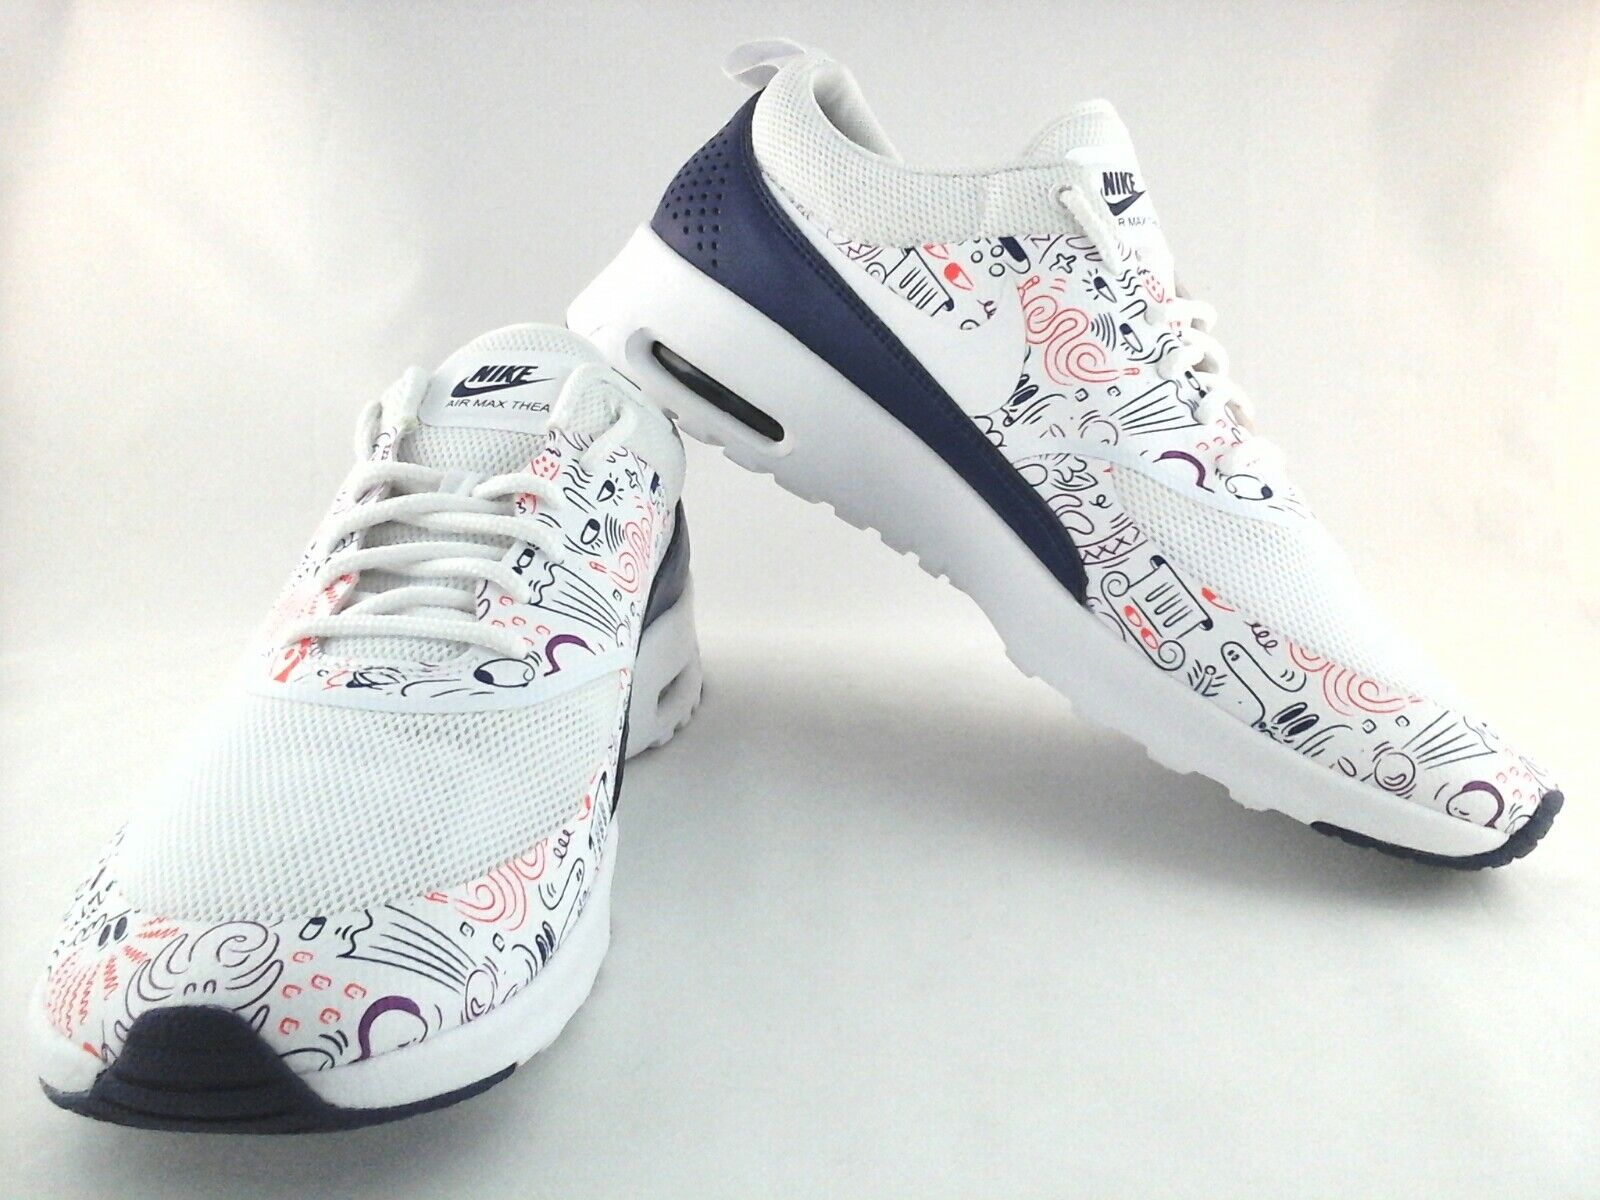 Details about NEW Nike Air Max Thea Womens Print White Dark Purple 599408 104 US 11.5 UK 9